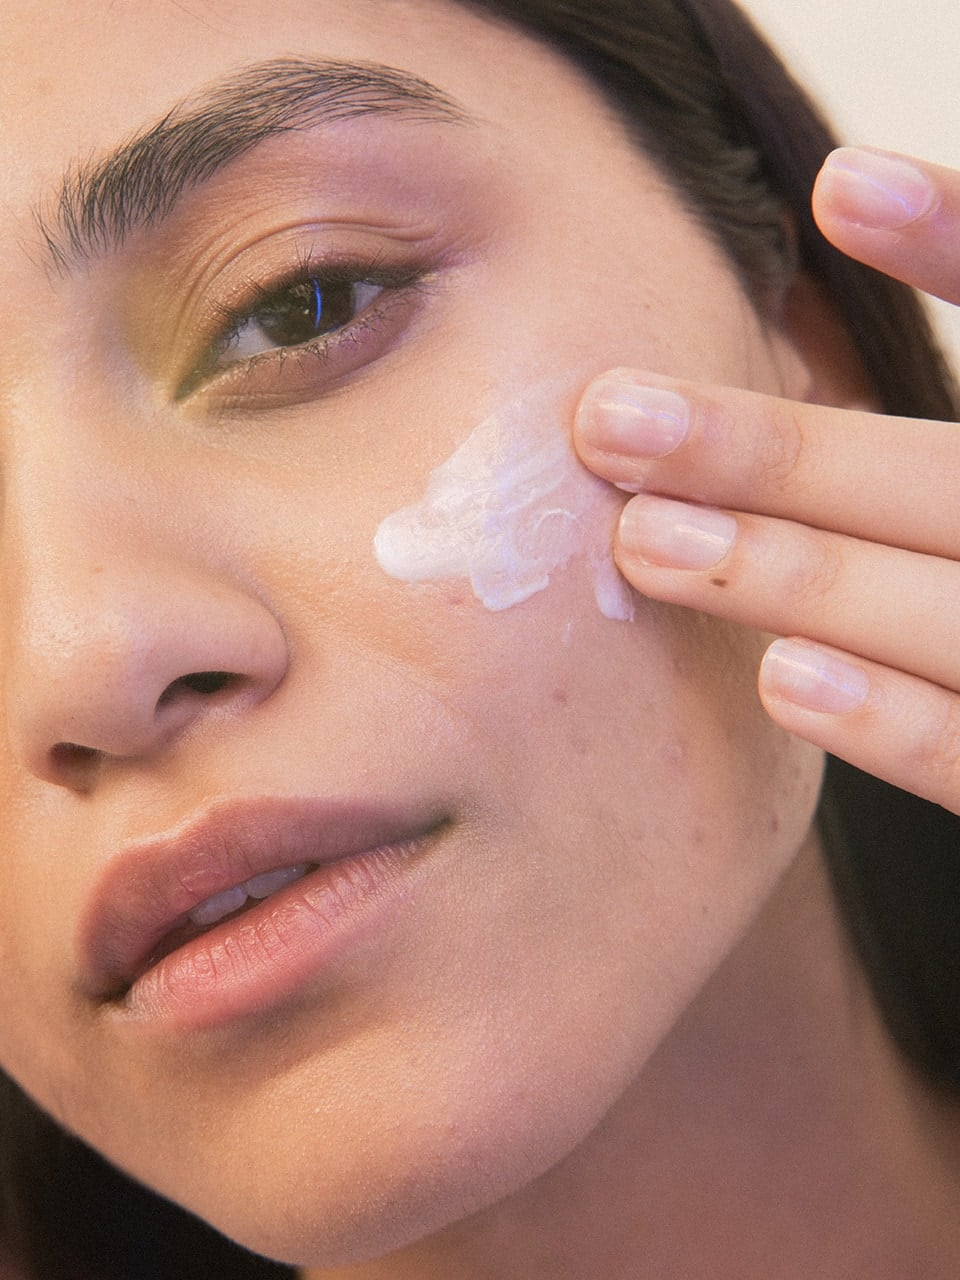 a woman rubbing in facial acne cream